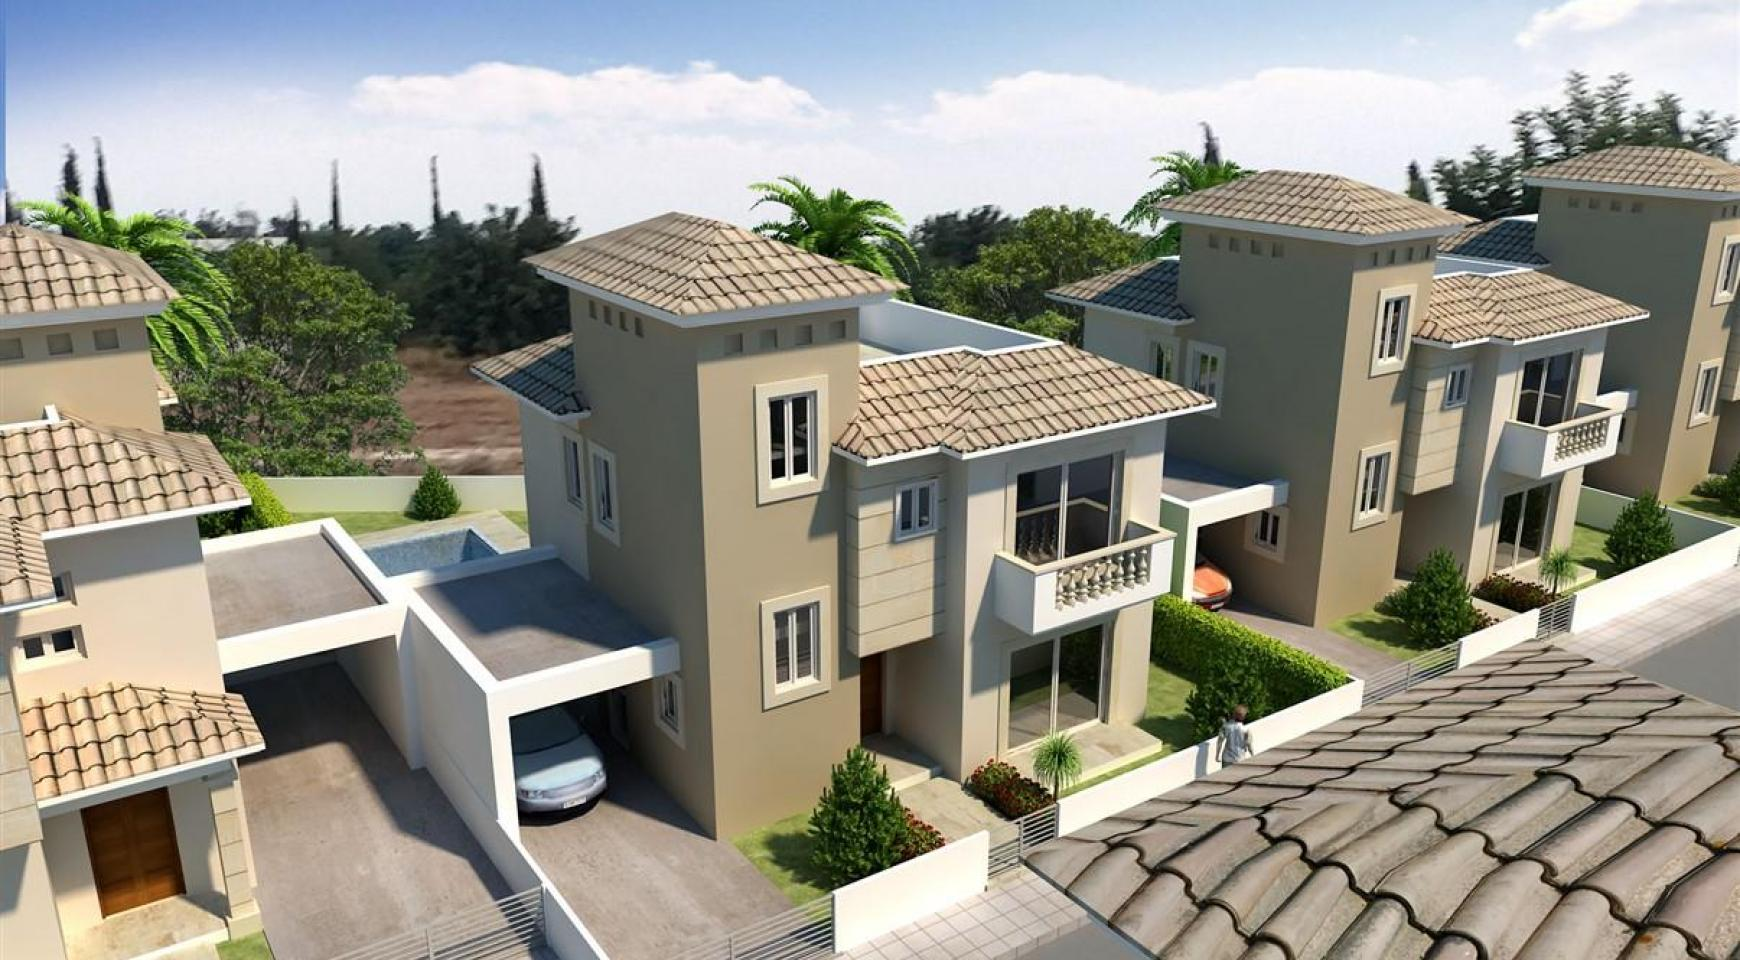 3 Bedroom Villa in New Project in Paphos - 4